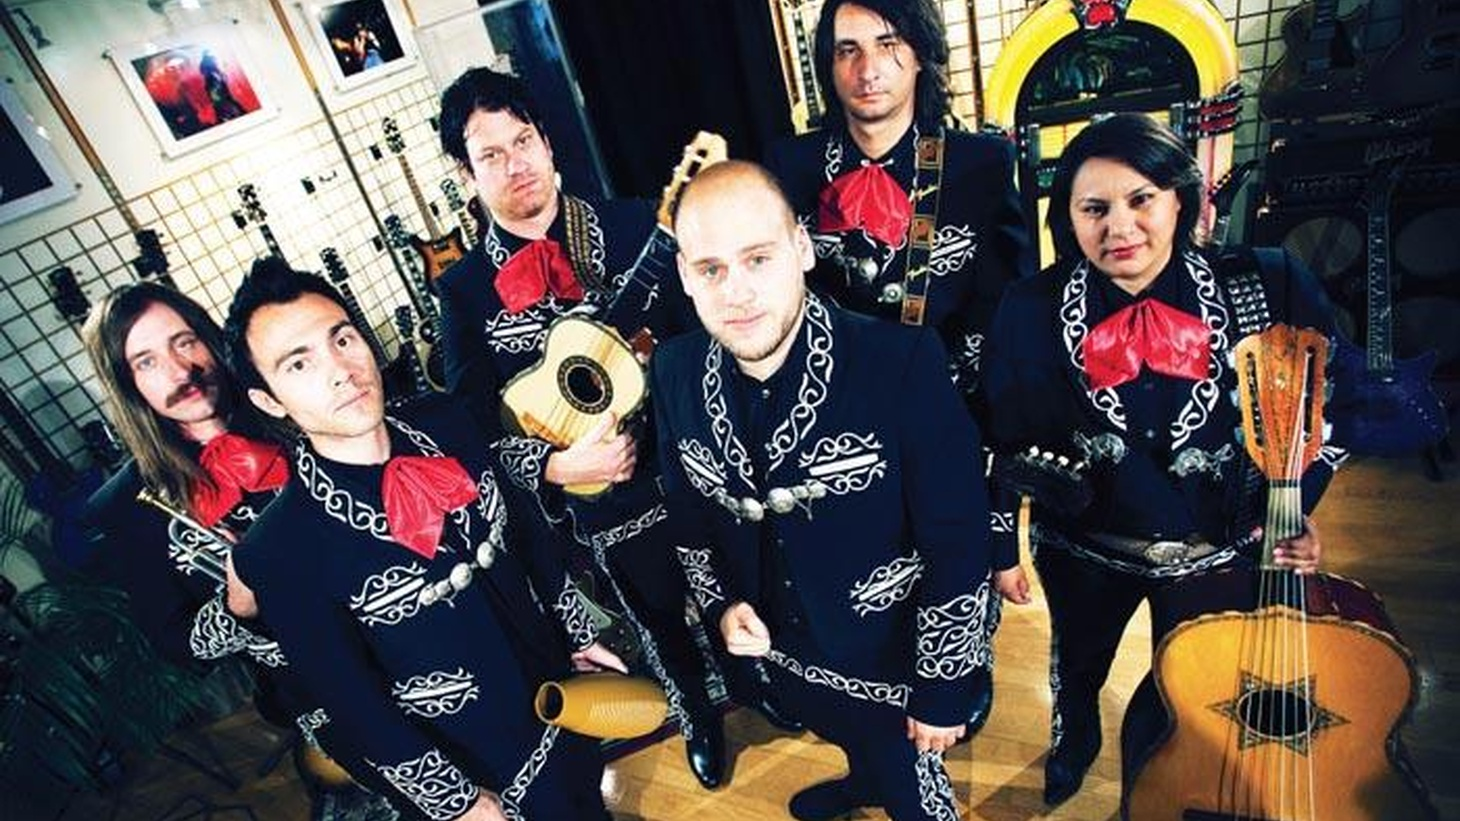 The alter ego of LA punk band the Bronx, Mariachi El Bronx melds the worlds of punk and traditional Mariachi music. Today's Top Tune is a prelude to KCRW's Halloween bash...